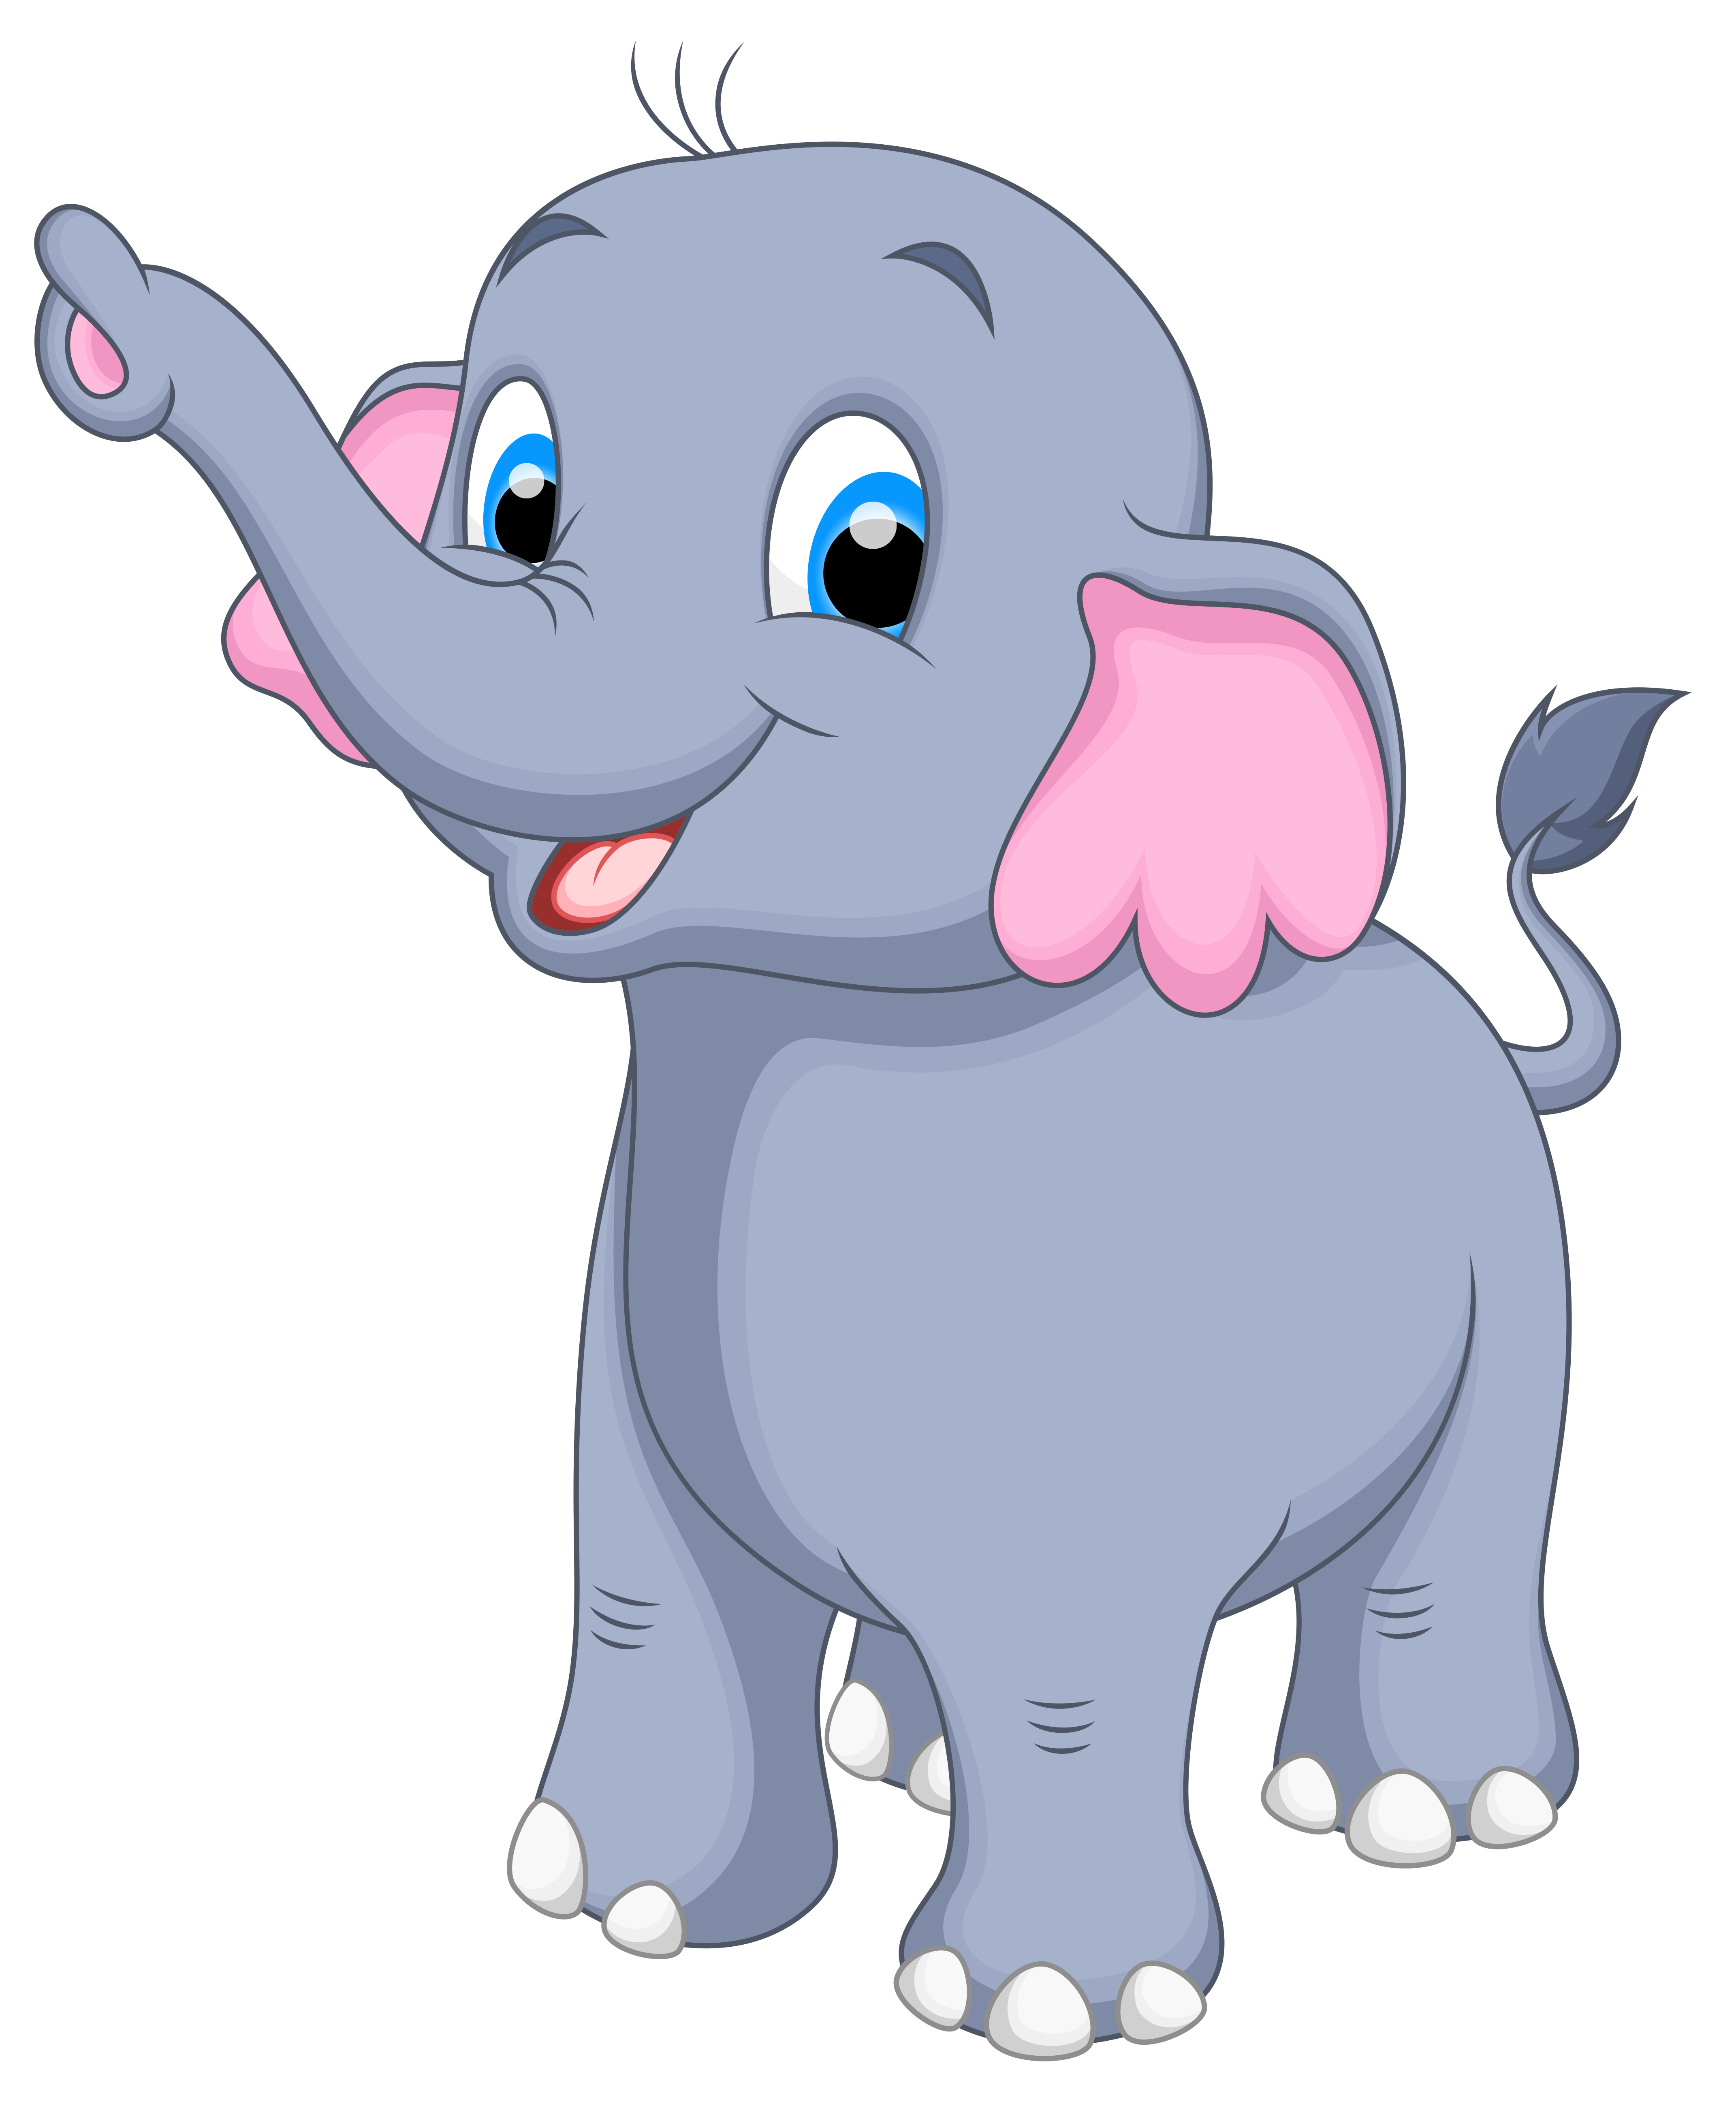 Little elephant png image. Elephants clipart